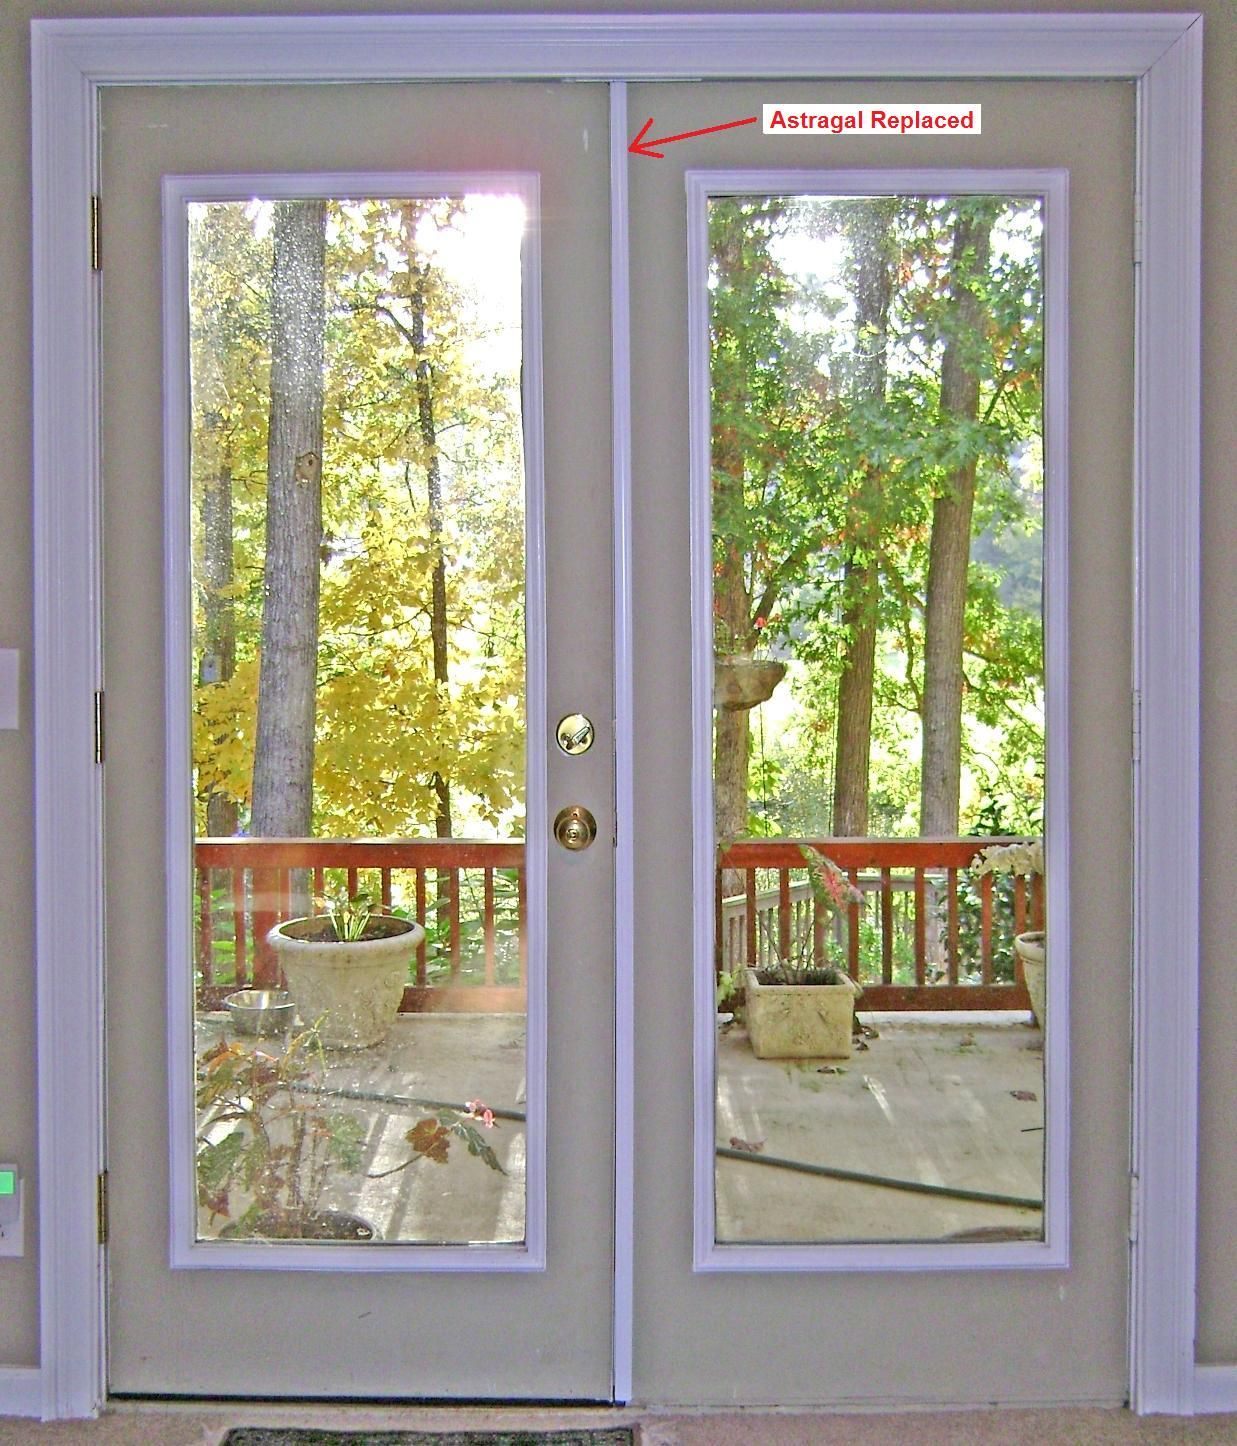 Instructions showing how to replace an exterior French door astragal. The old wood astragal was broken and replaced with an aluminum unit. & Replacing French Door Astragal | DIY | Pinterest | Doors